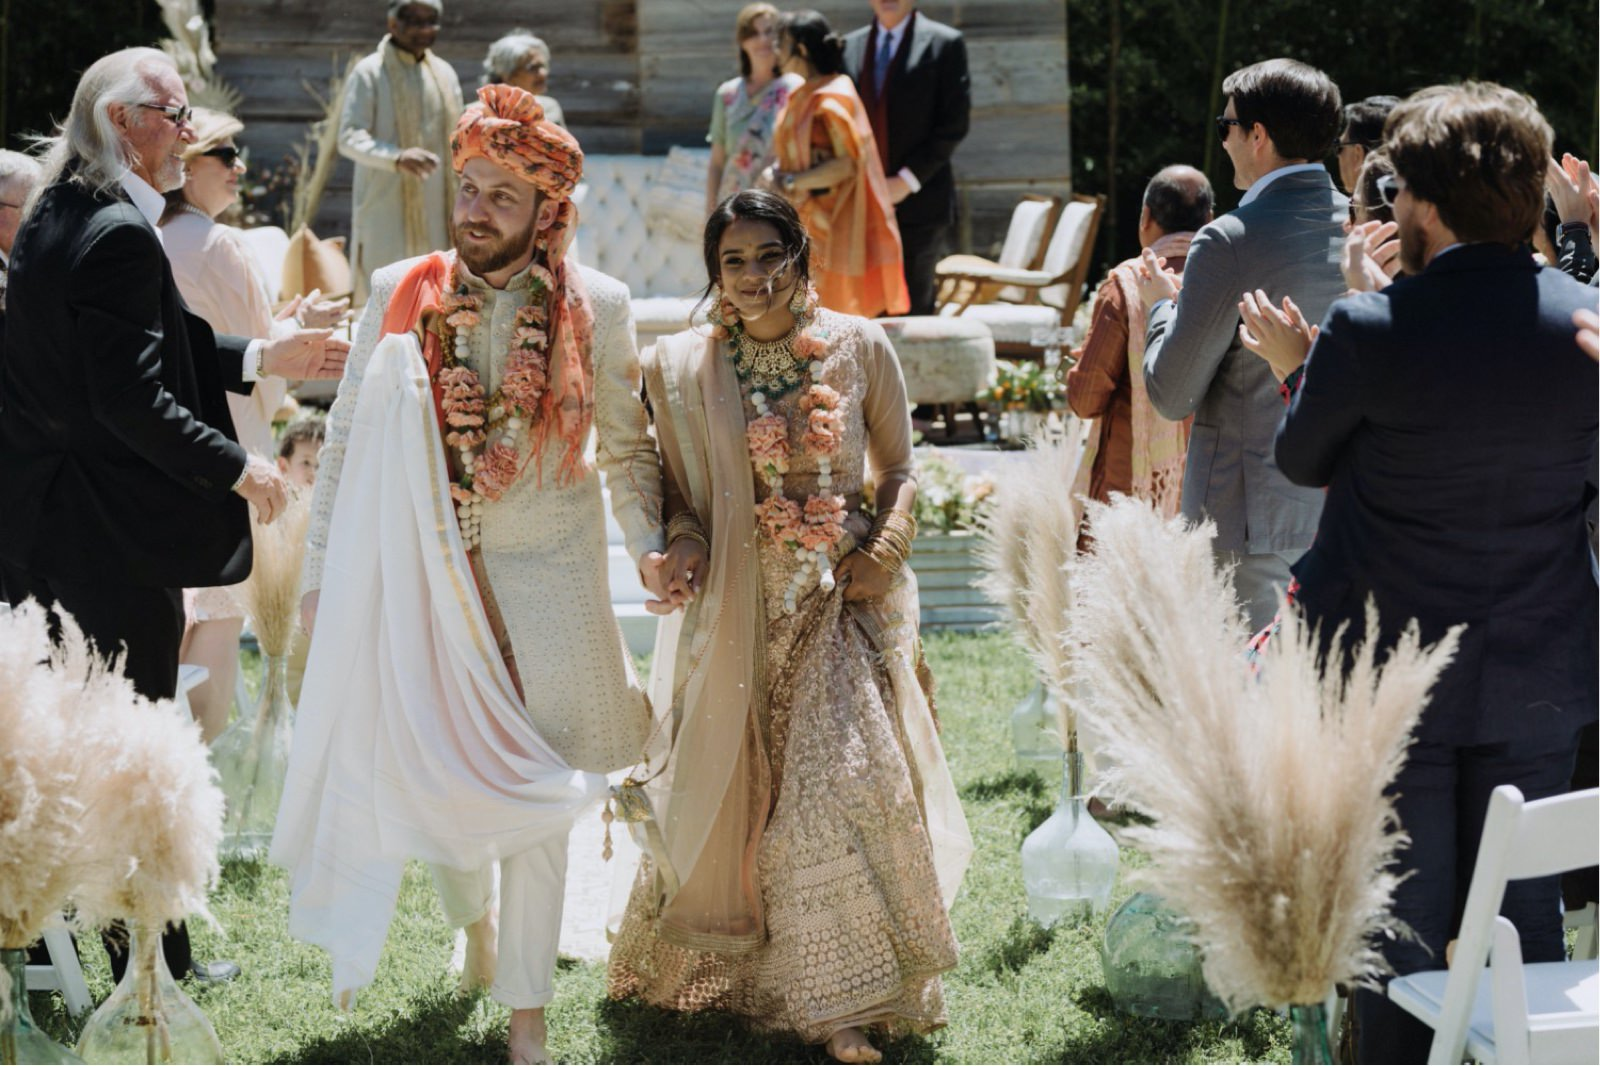 Wedding recessional of an Indian ceremony at a unique Austin venue